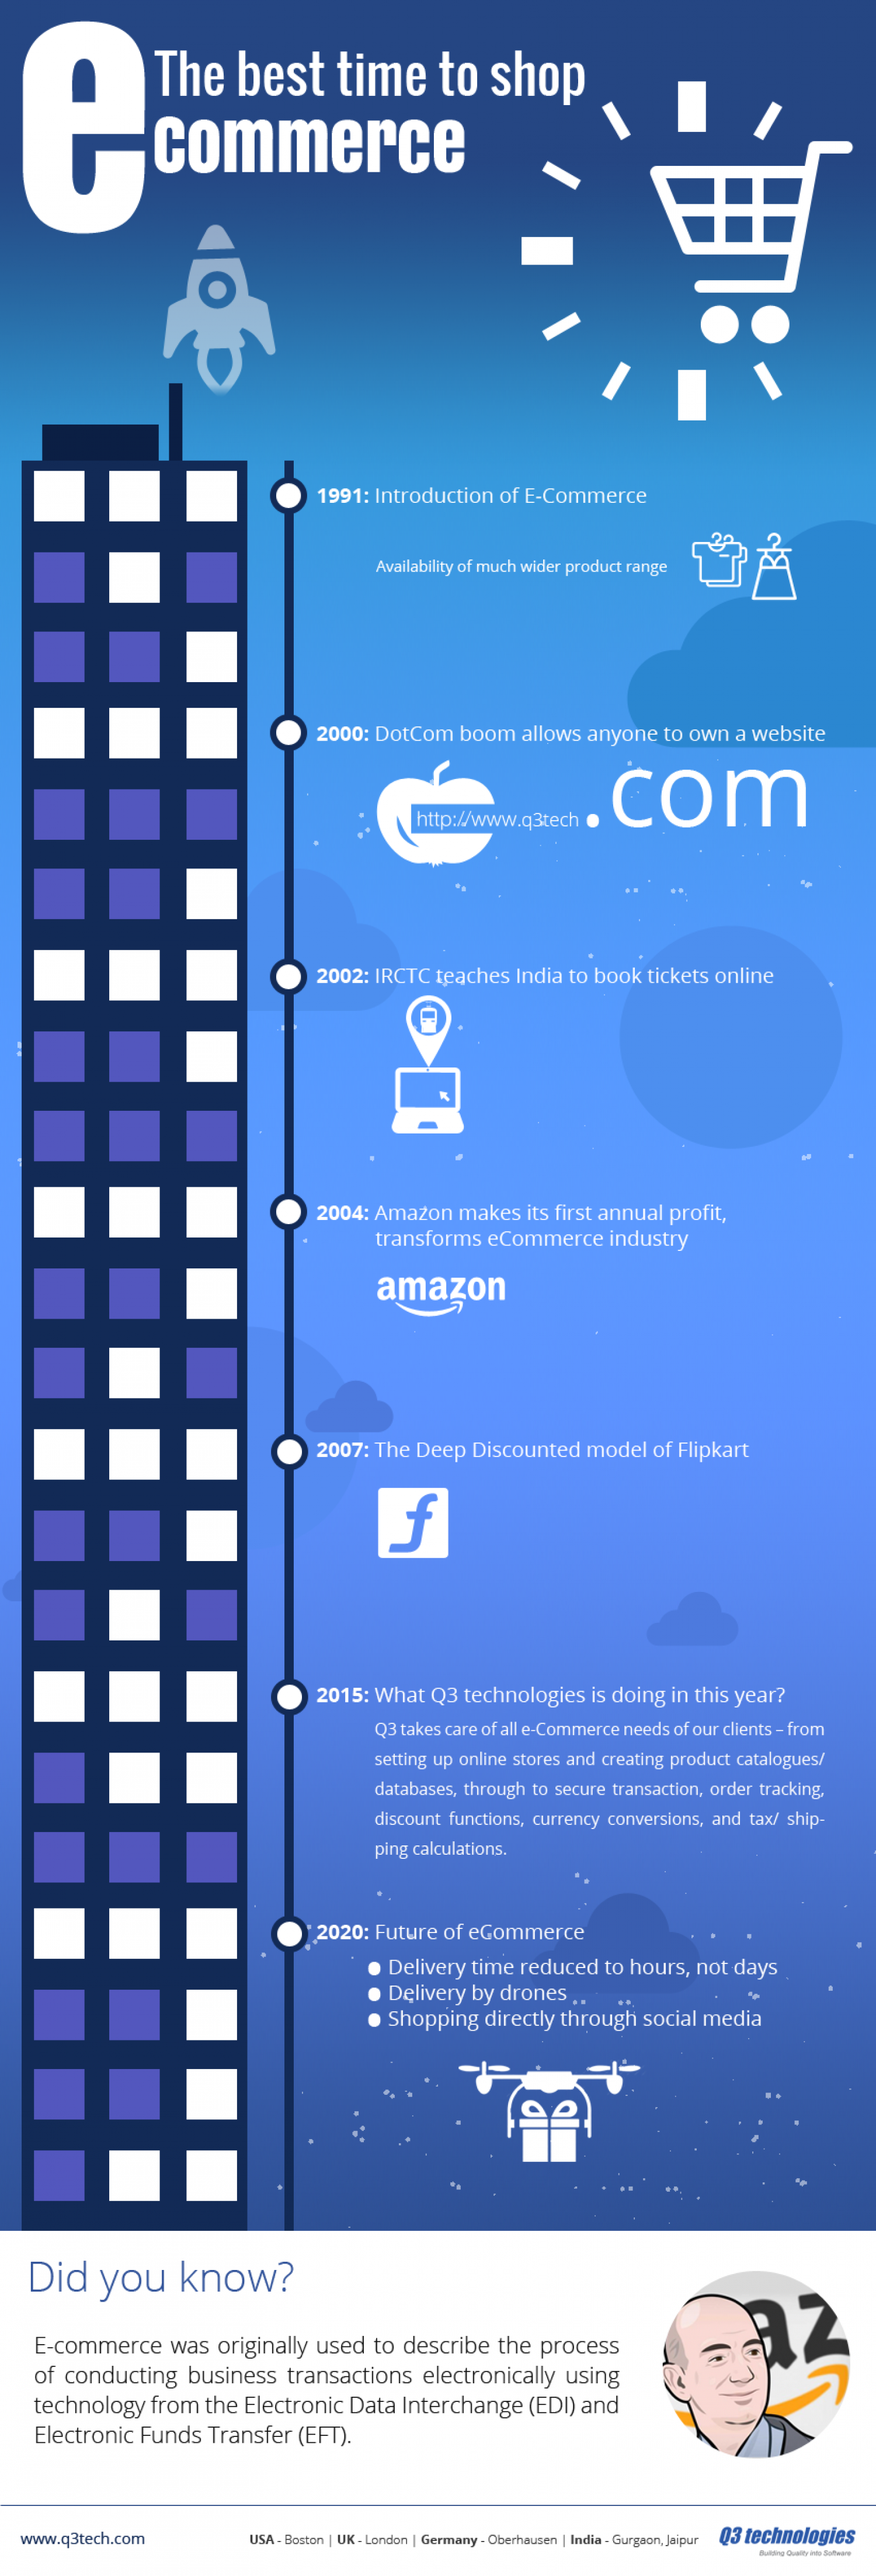 eCommerce Development - The History of eCommerce Infographic